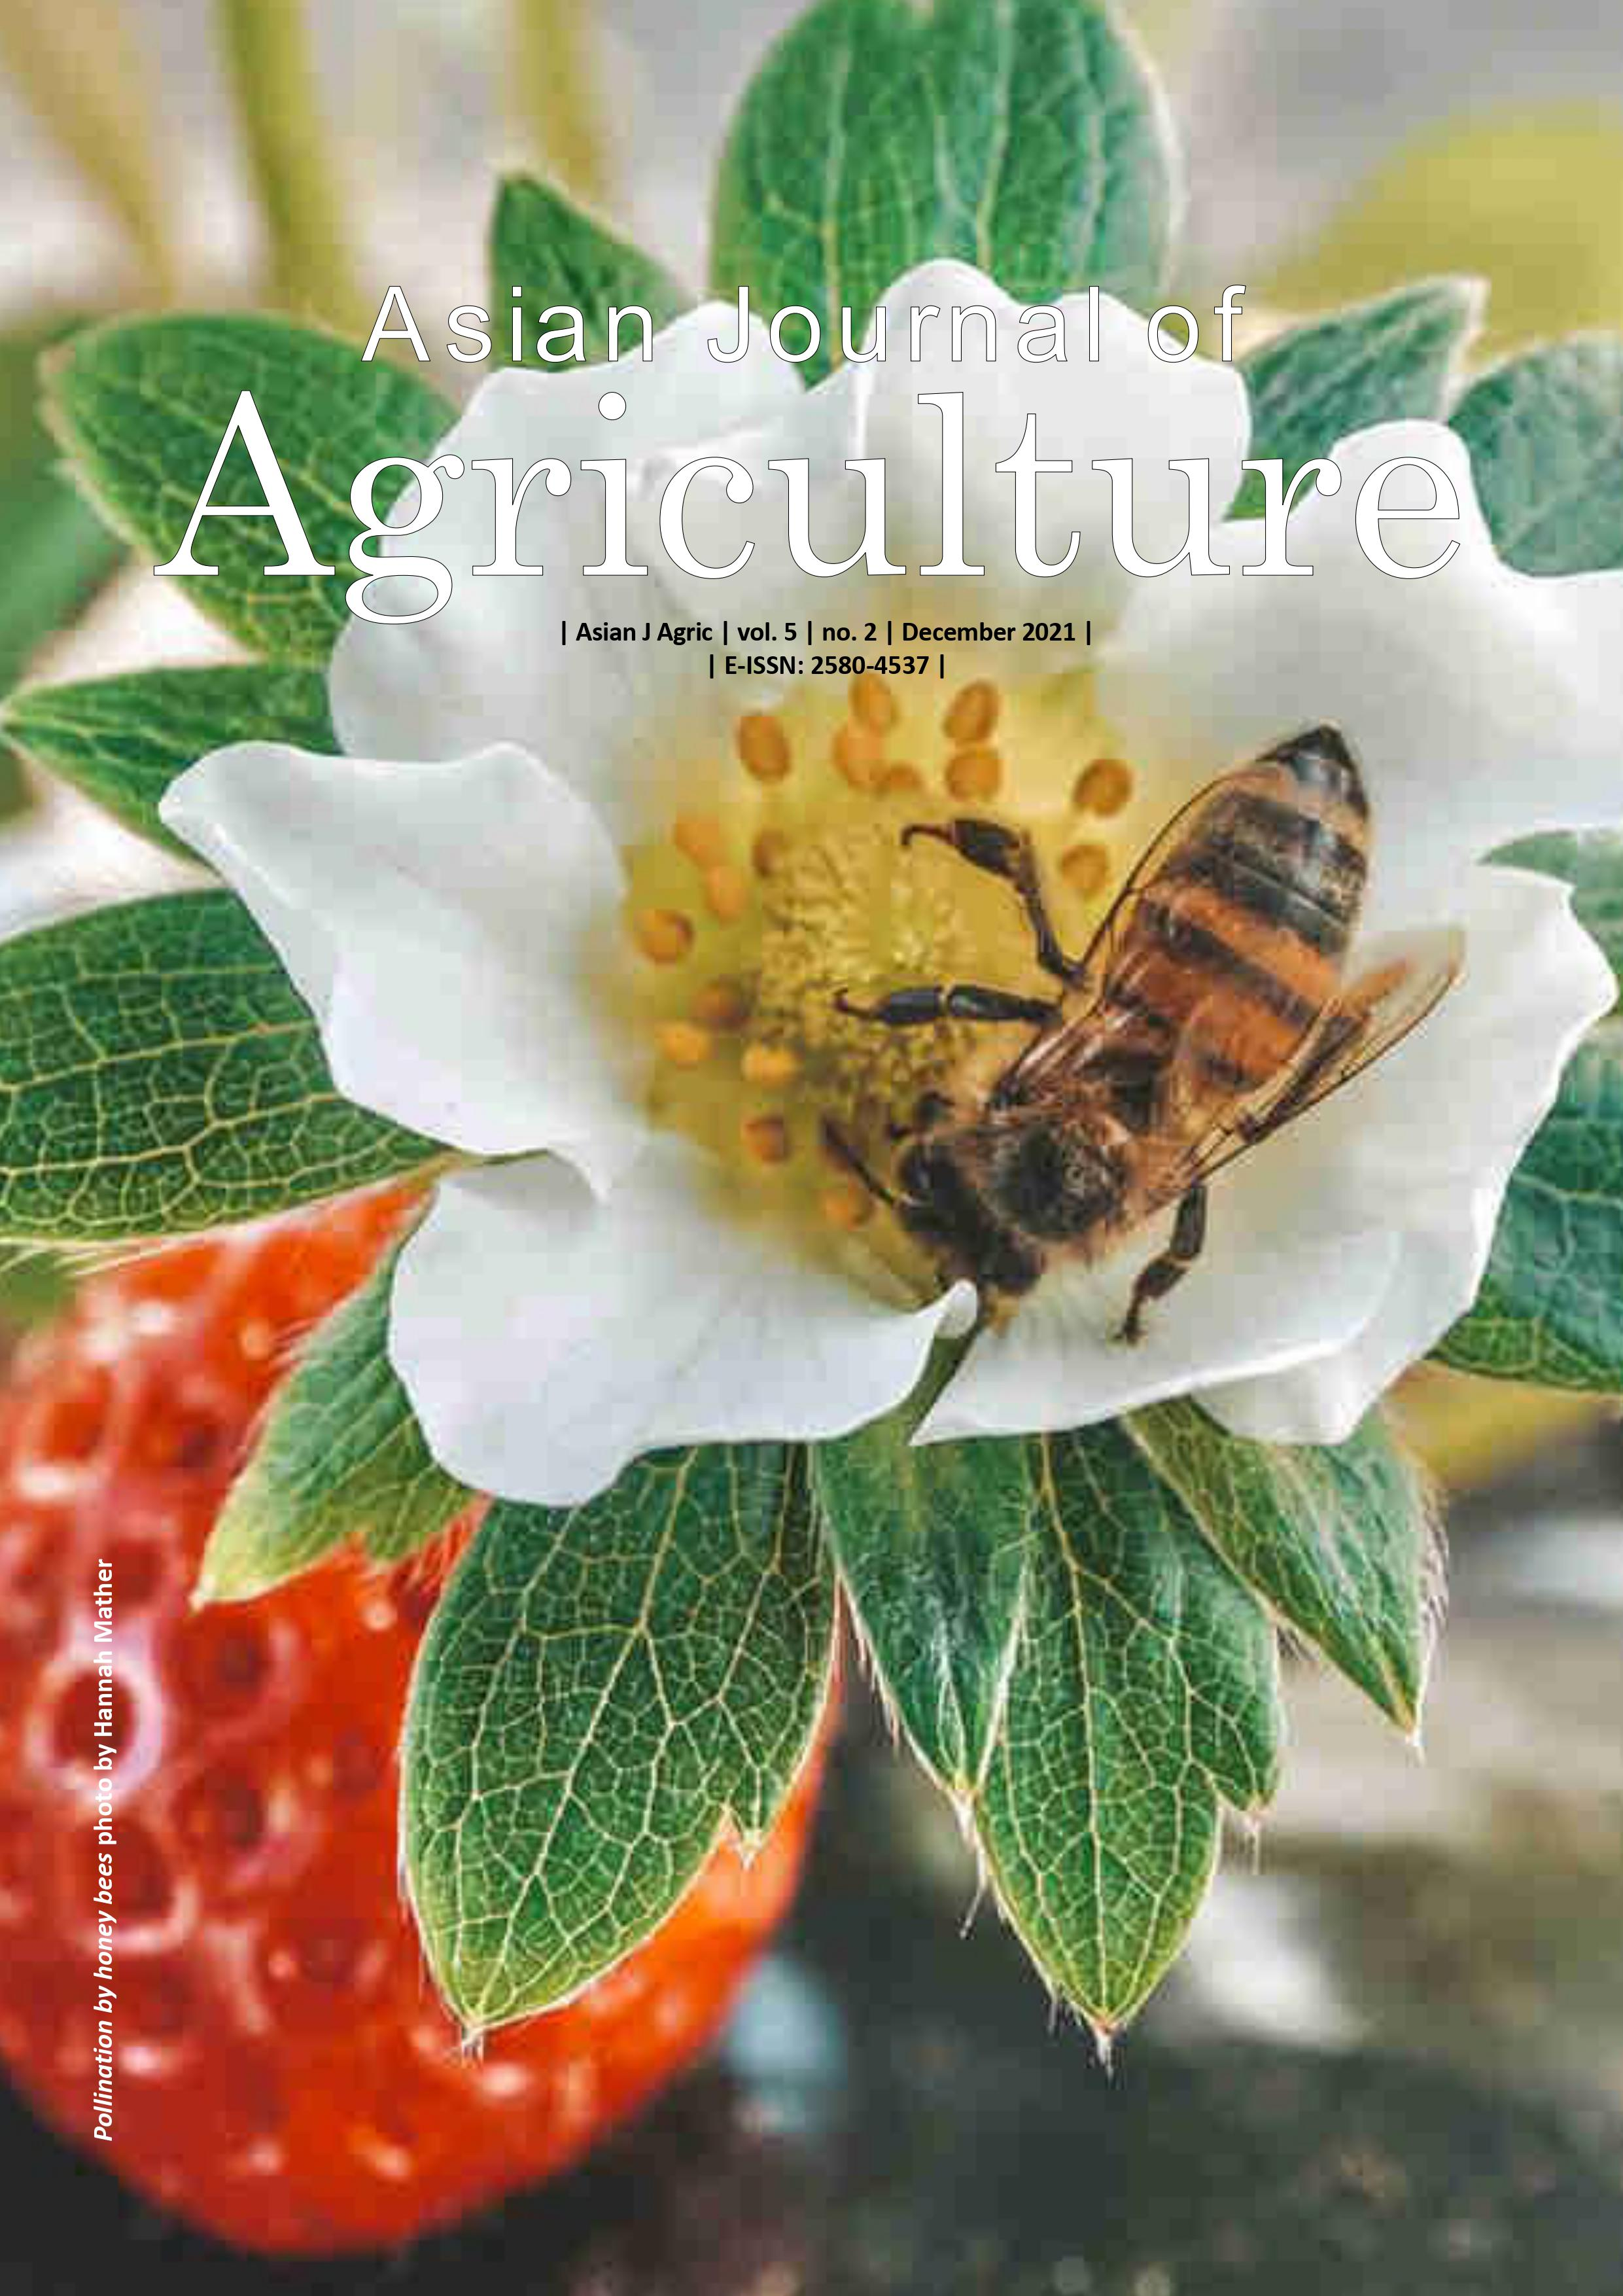 Asian Journal of Agriculture